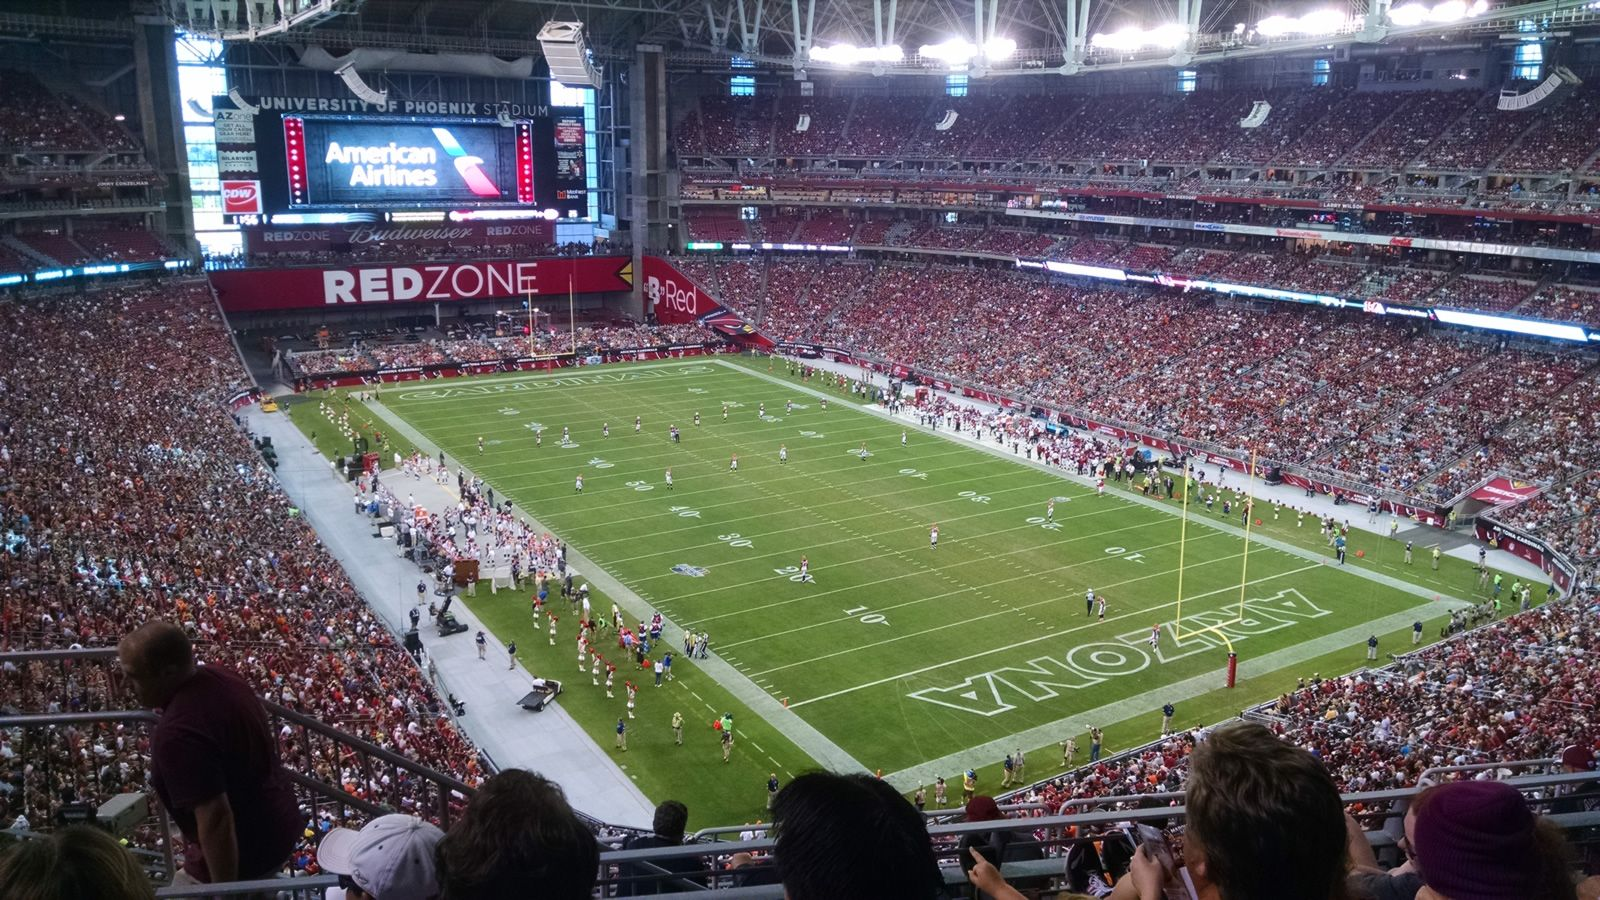 Arizona Cardinals Seat View for University of Phoenix Stadium Section 433, Row 4, Seat 19